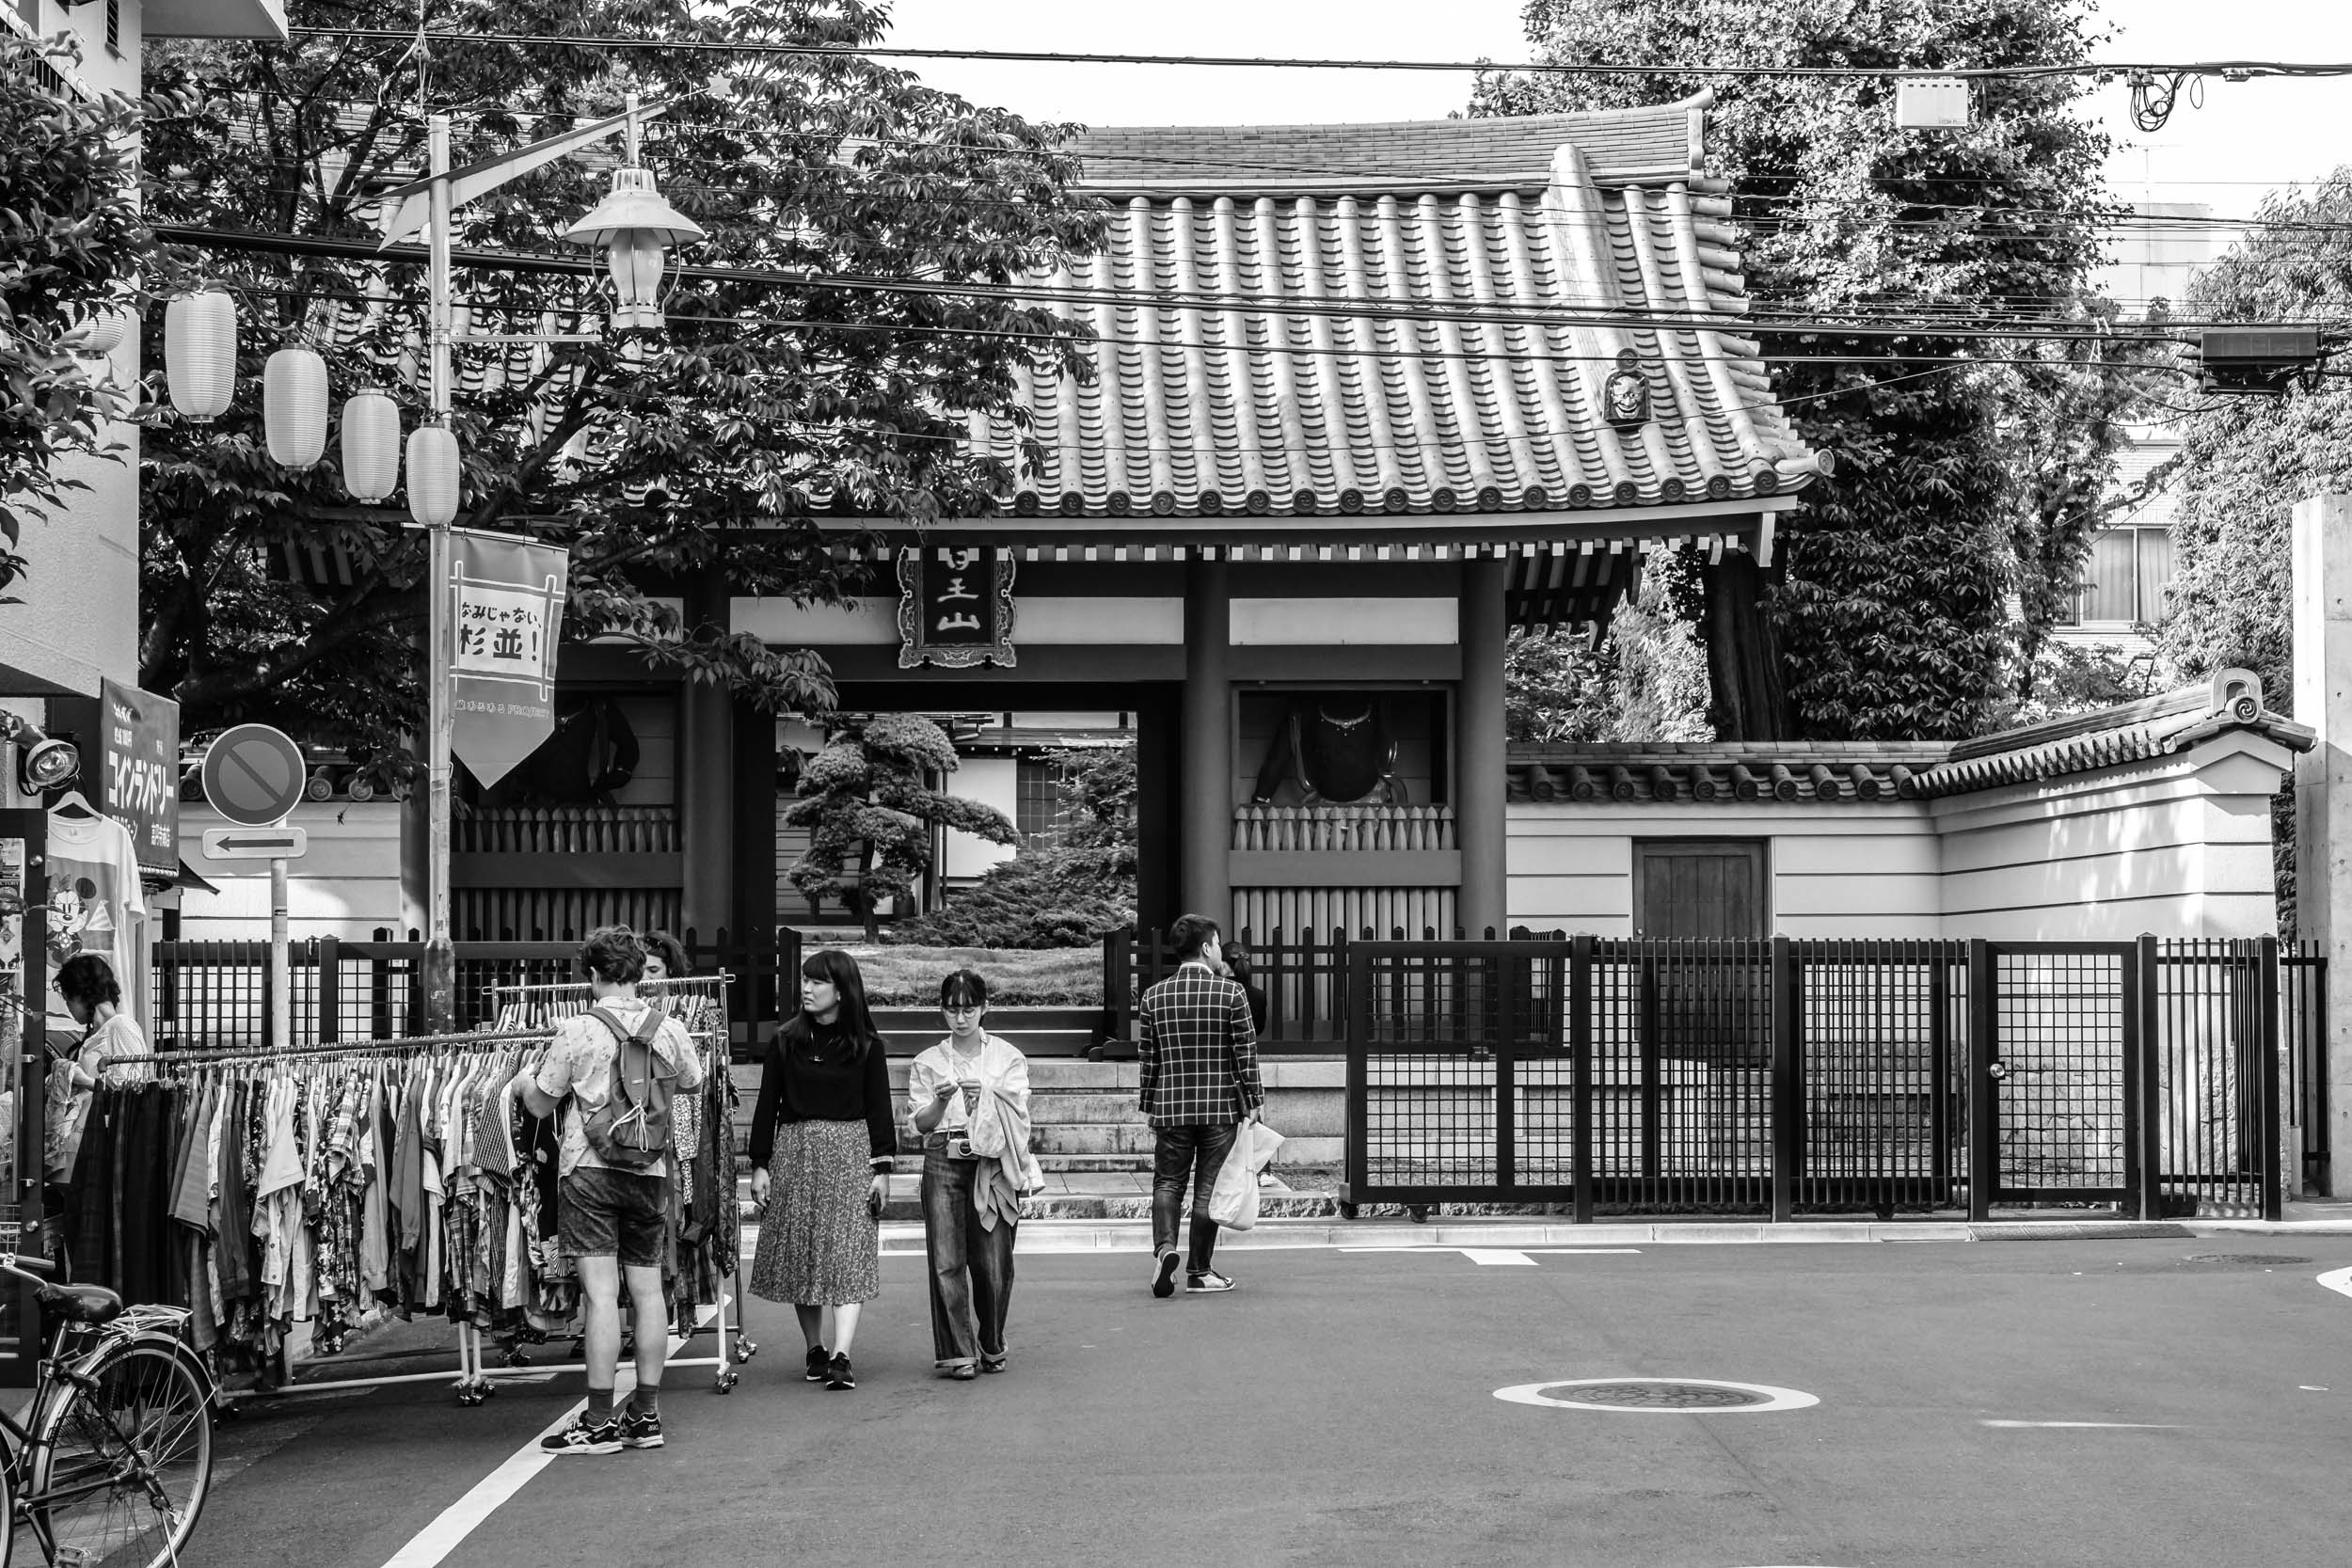 Shop or temple? You can go to both in Koenji